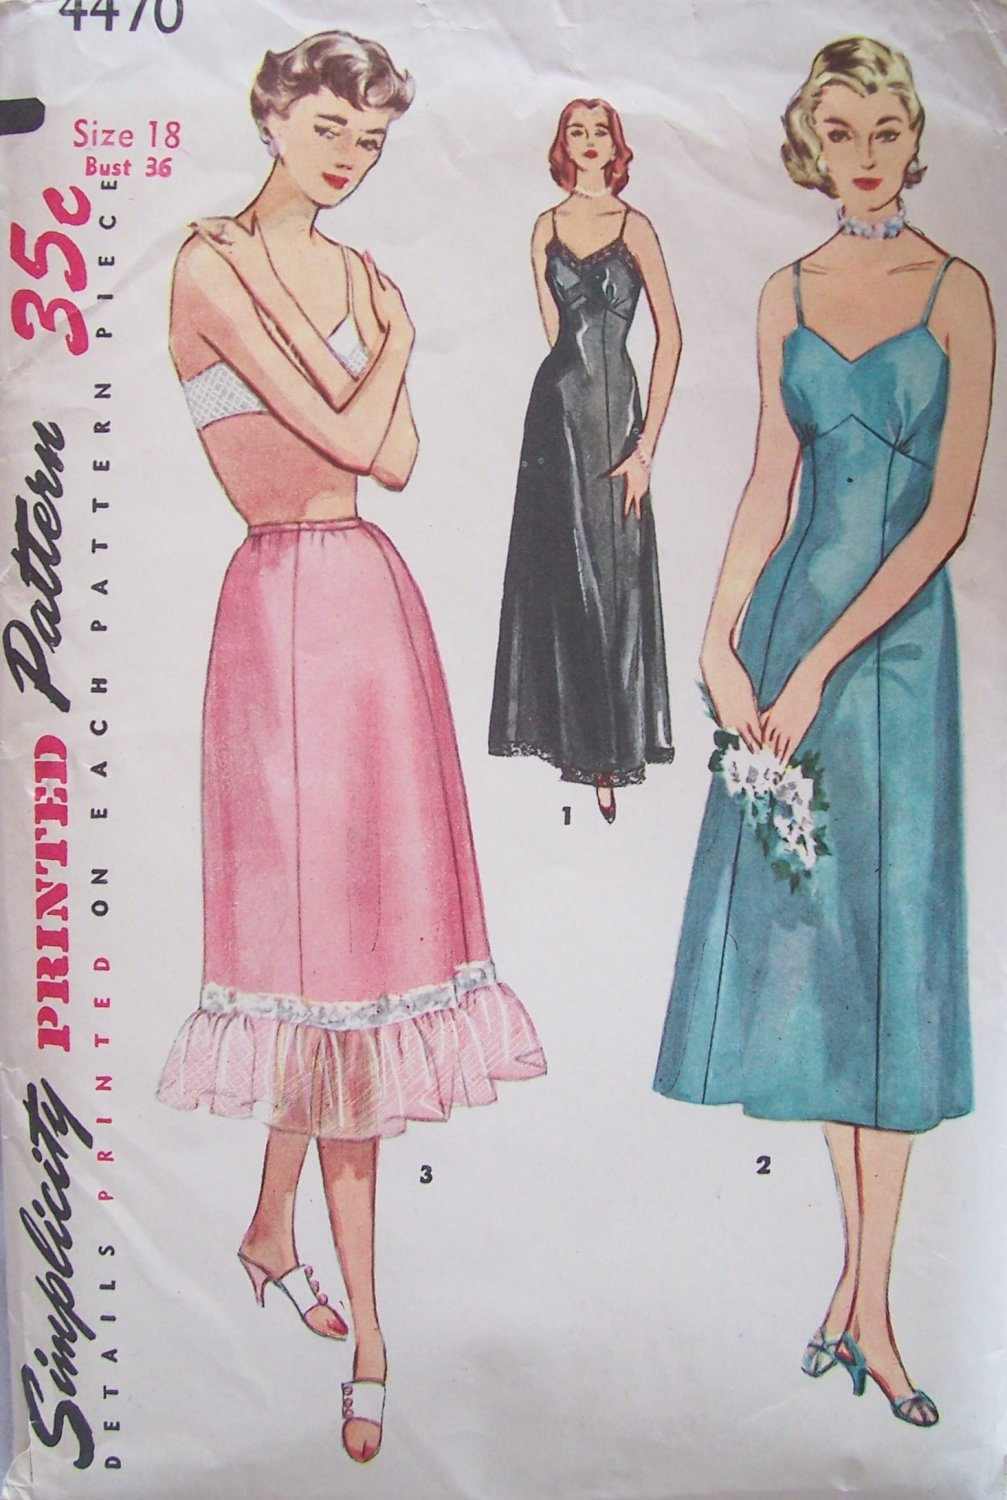 Vintage 1953 Simplicity 4470 Lingerie Full Long Slip and Half Pattern Size 18 Bust 36